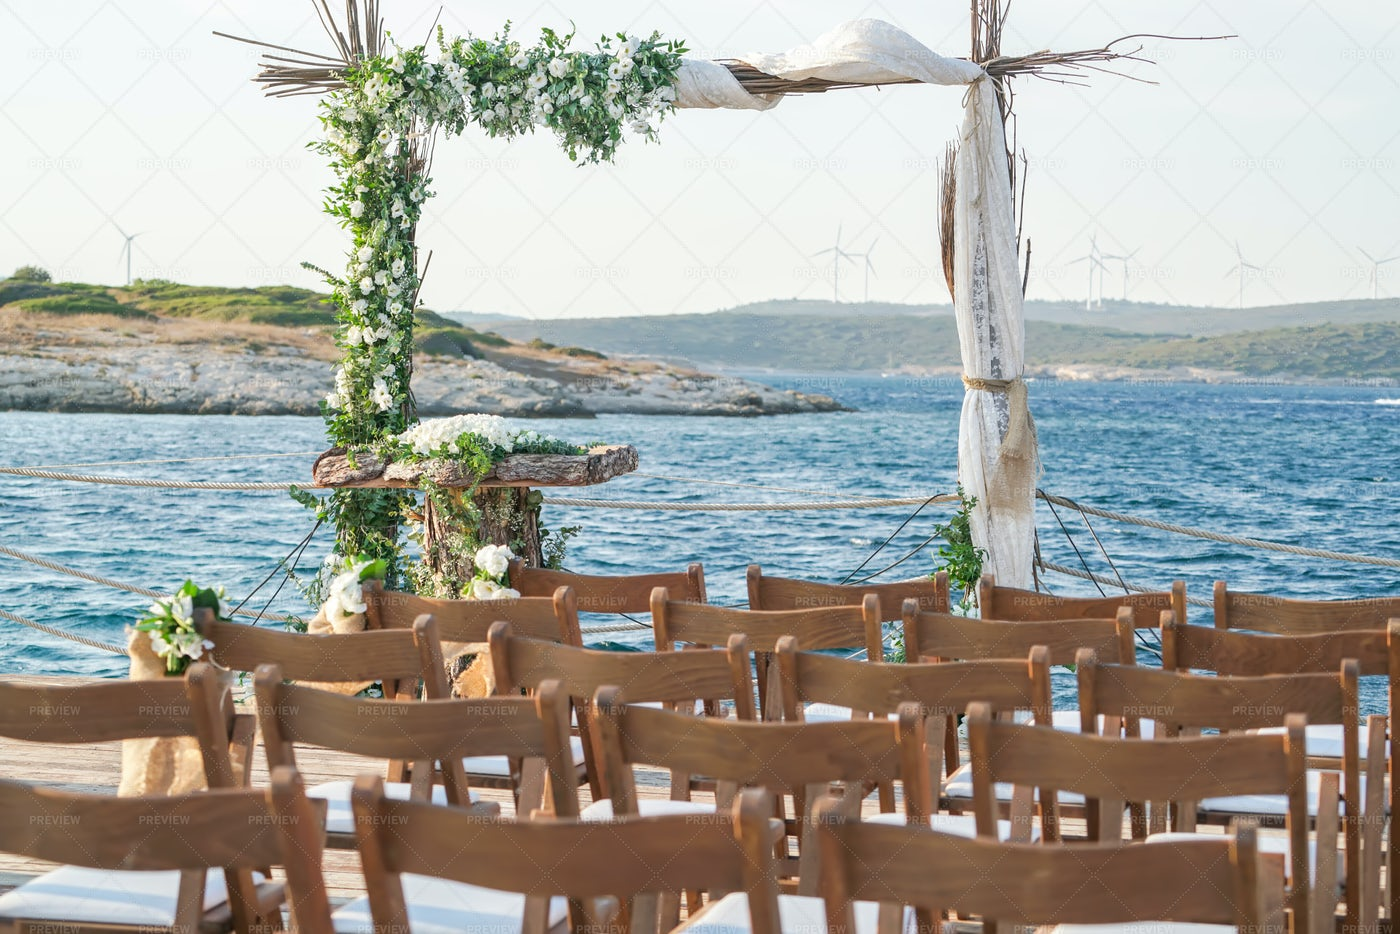 Wedding Ceremony By The Water: Stock Photos